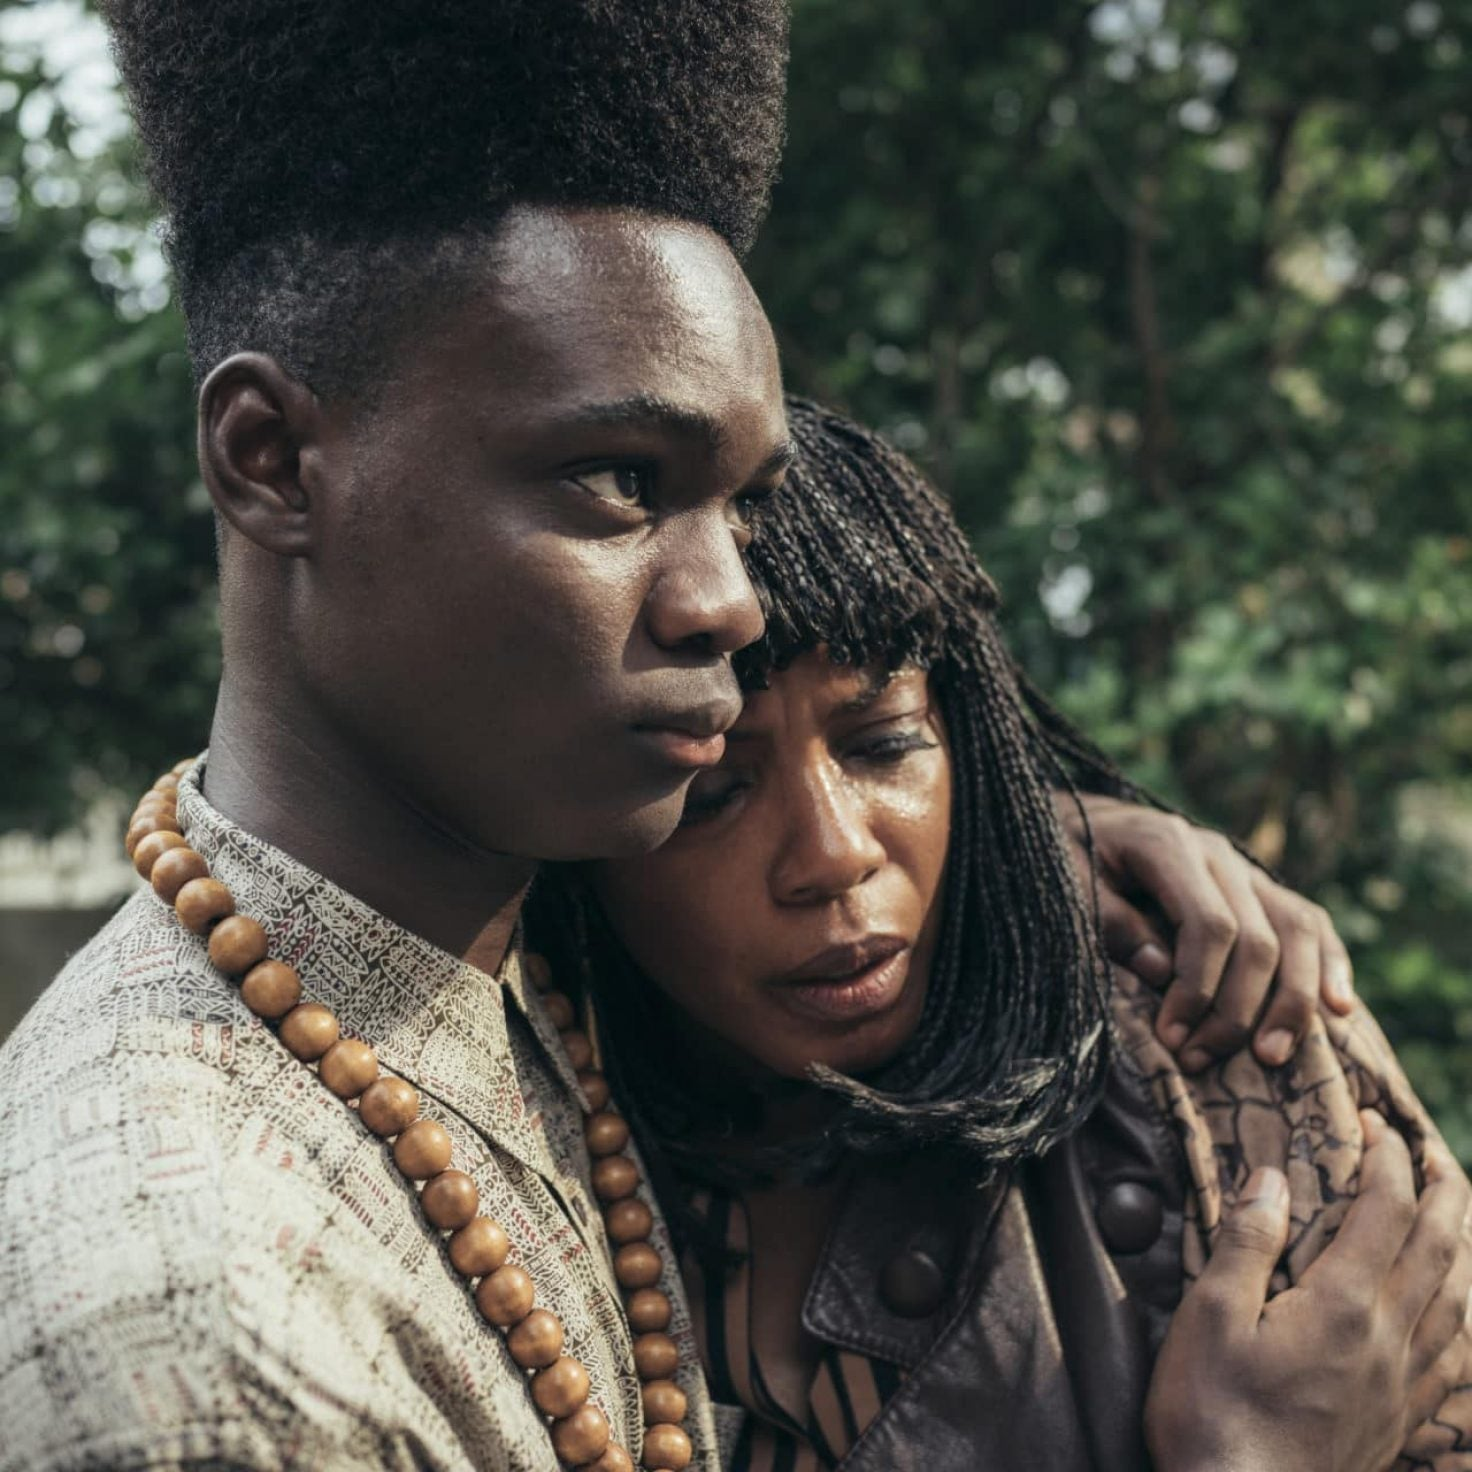 The Powerful Trailer For Ava Duvernay's 'When They See Us' Is Here